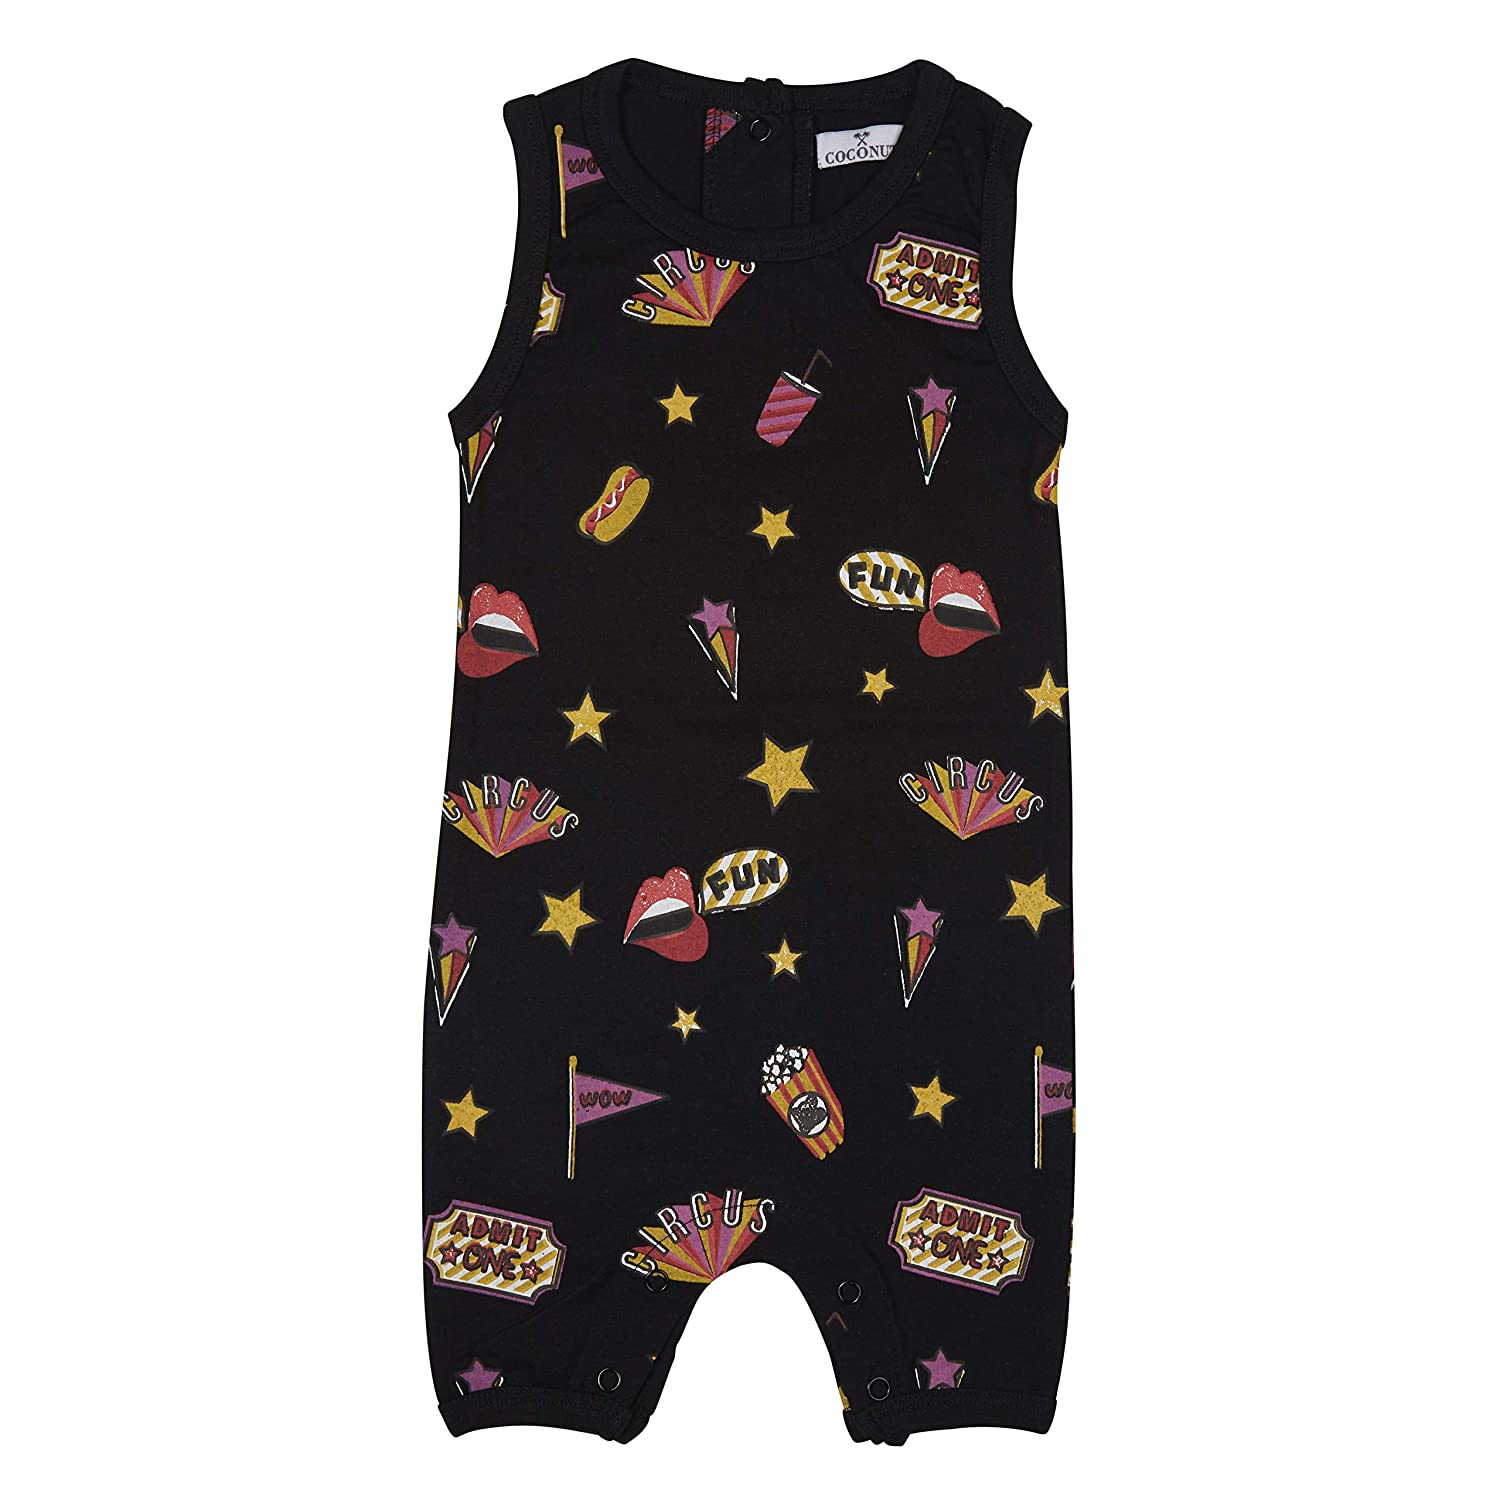 Coconut Cotton Unisex Baby//Toddler Circus Romper